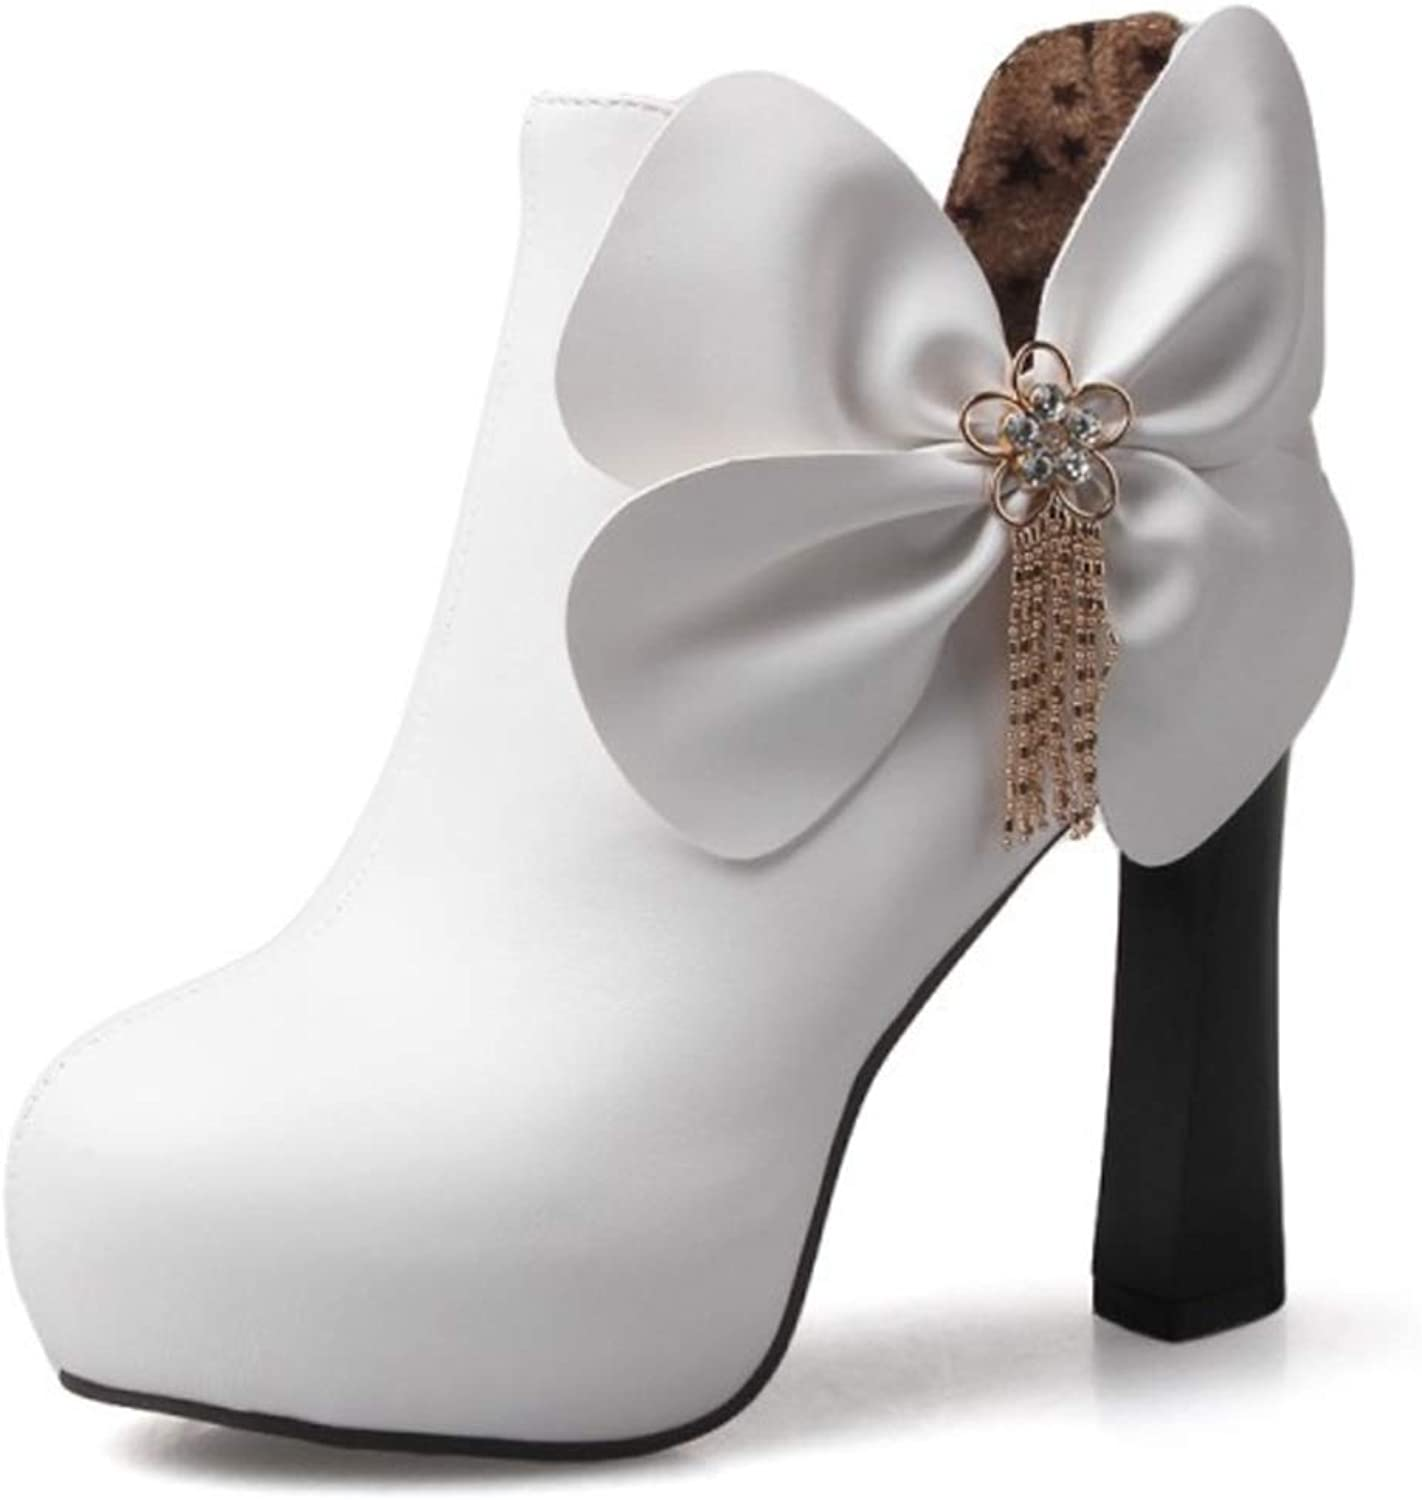 Women's Wedding Boots Artificial PU high-Heeled Thick with Ankle Boots Bow platformThickening Warm Bride shoes(36 EU-43 EU)